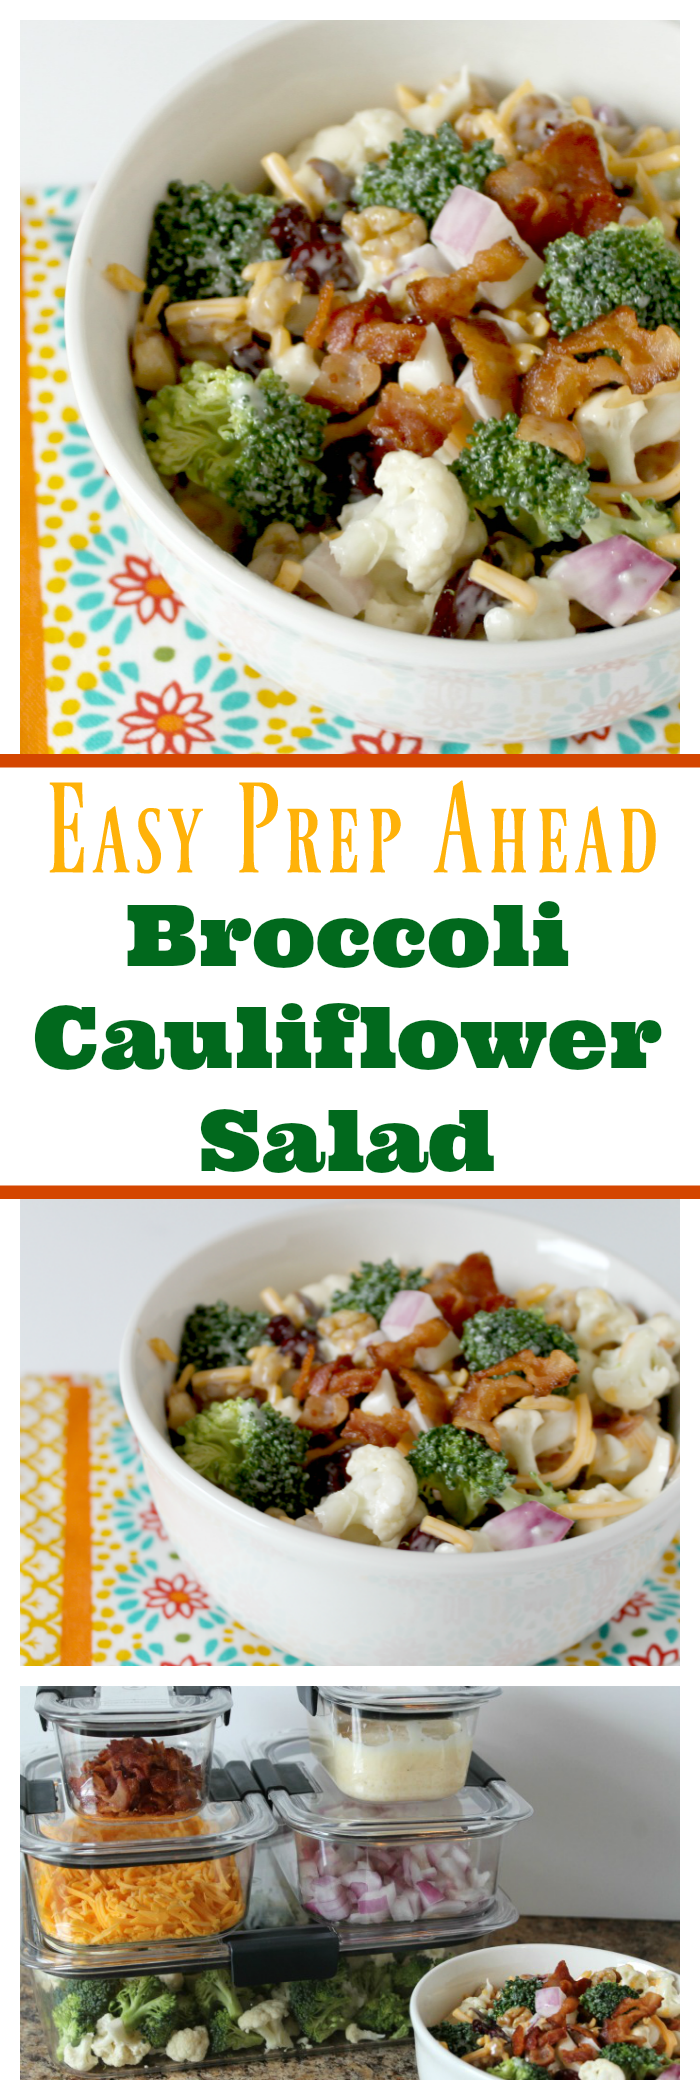 This Easy Prep Ahead Broccoli Cauliflower Salad is simply amazing and will be a HIT at your next gathering! Perfect for feeding a family or a crowd for potluck and barbecues!